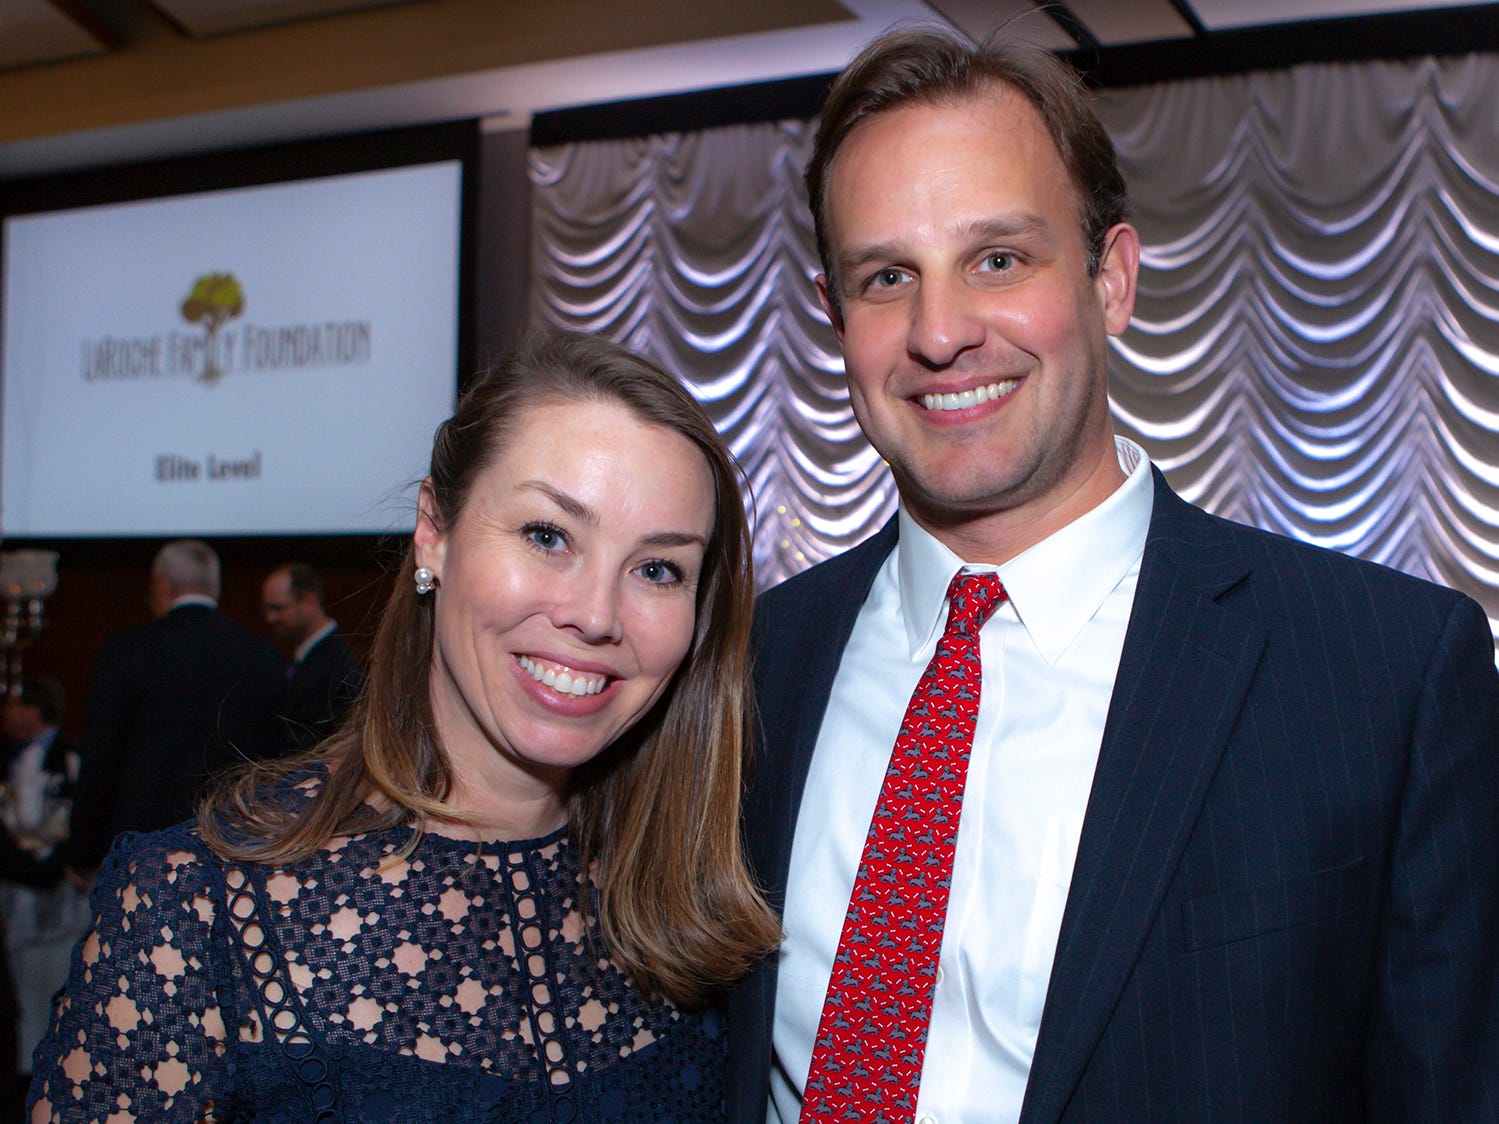 Gina and Grant DeJean at the 2019 Excellence in Education Gala, hosted by the City Schools Foundation on Friday, Jan. 25, 2019 at Stones River Country Club in Murfreesboro.